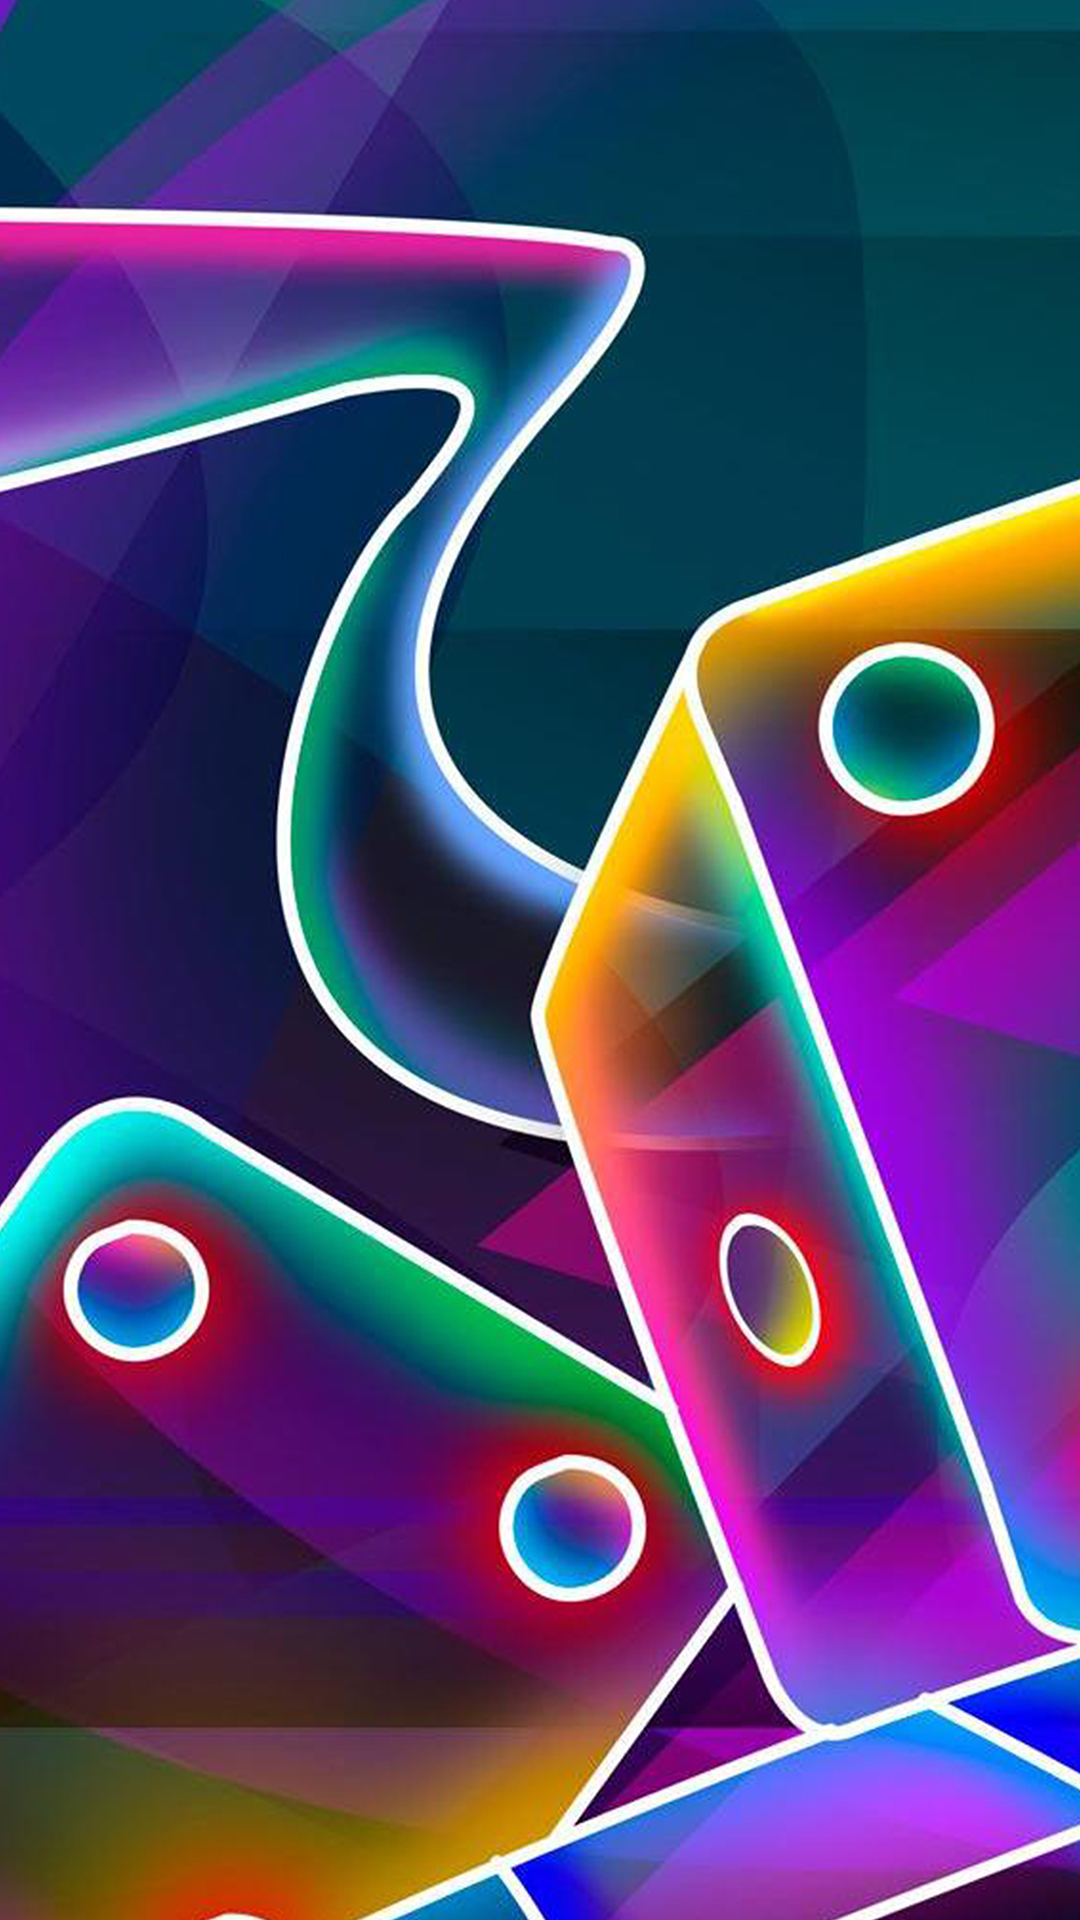 Neon dice hd wallpaper for your mobile phone - Neon hd wallpaper for mobile ...